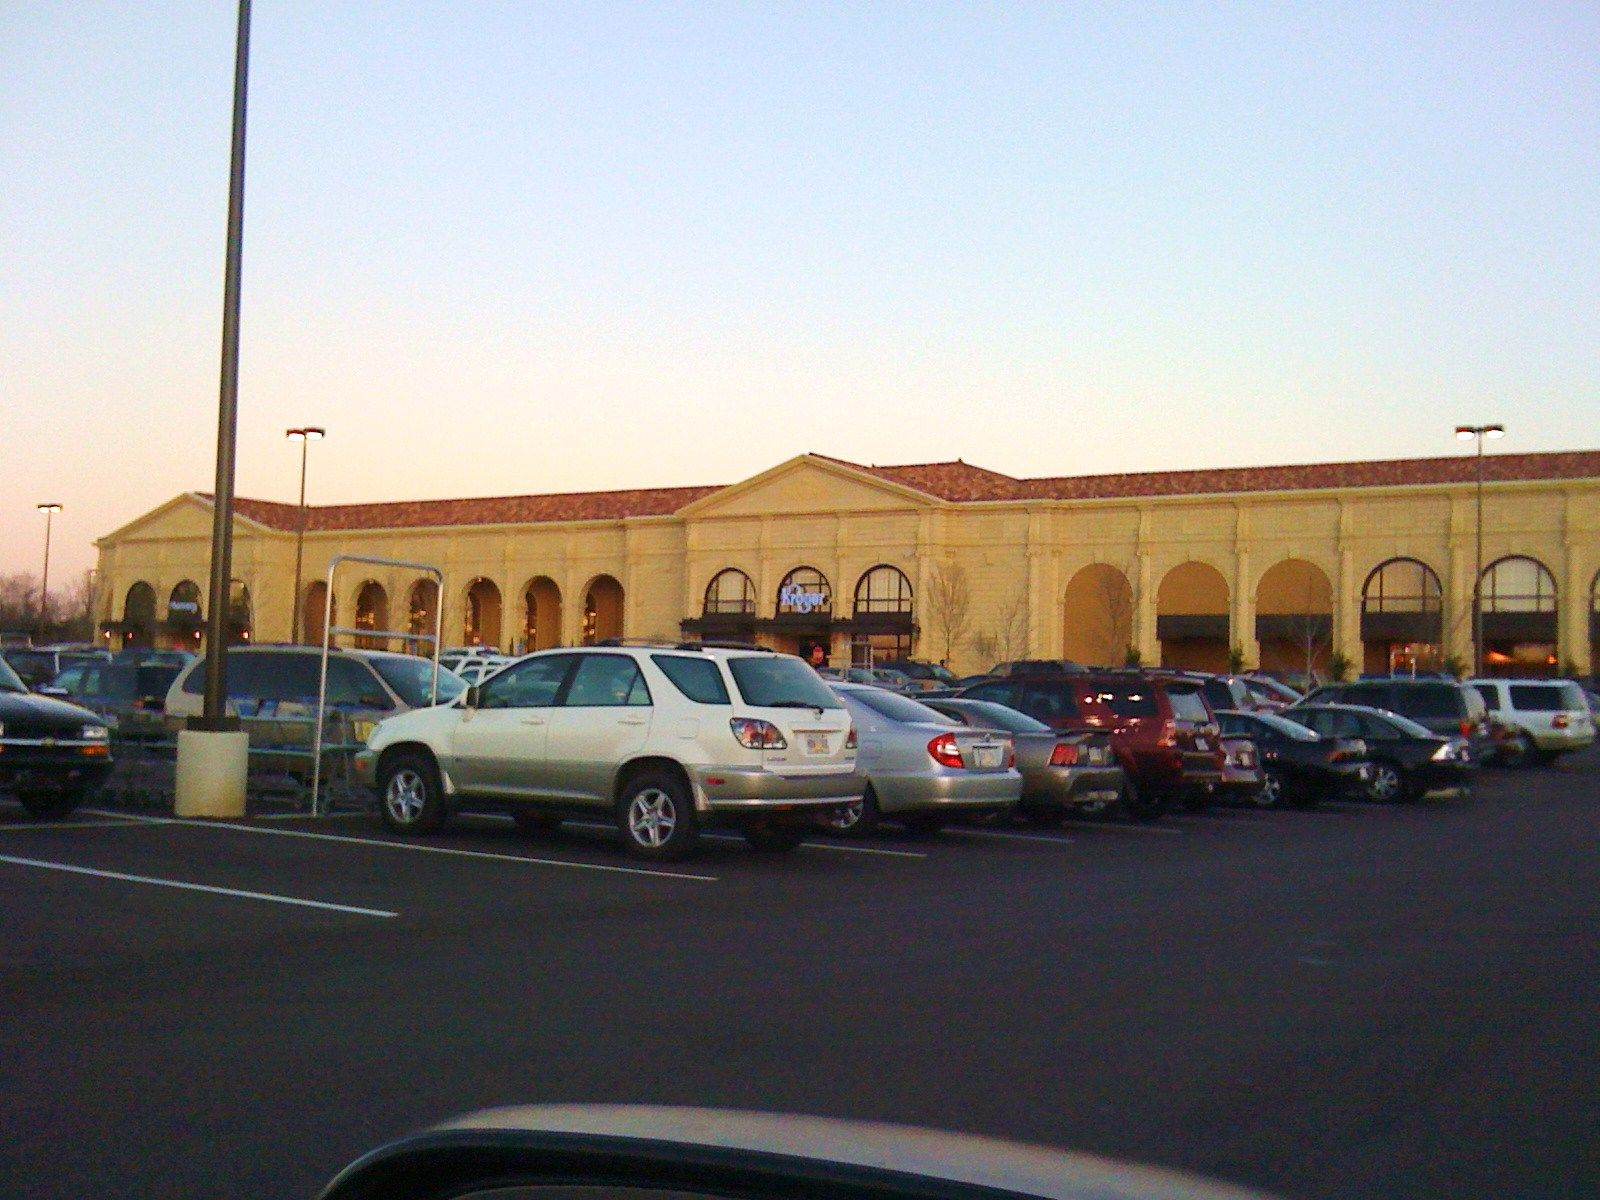 kroger grocery store in madison ms the whole town is themed with